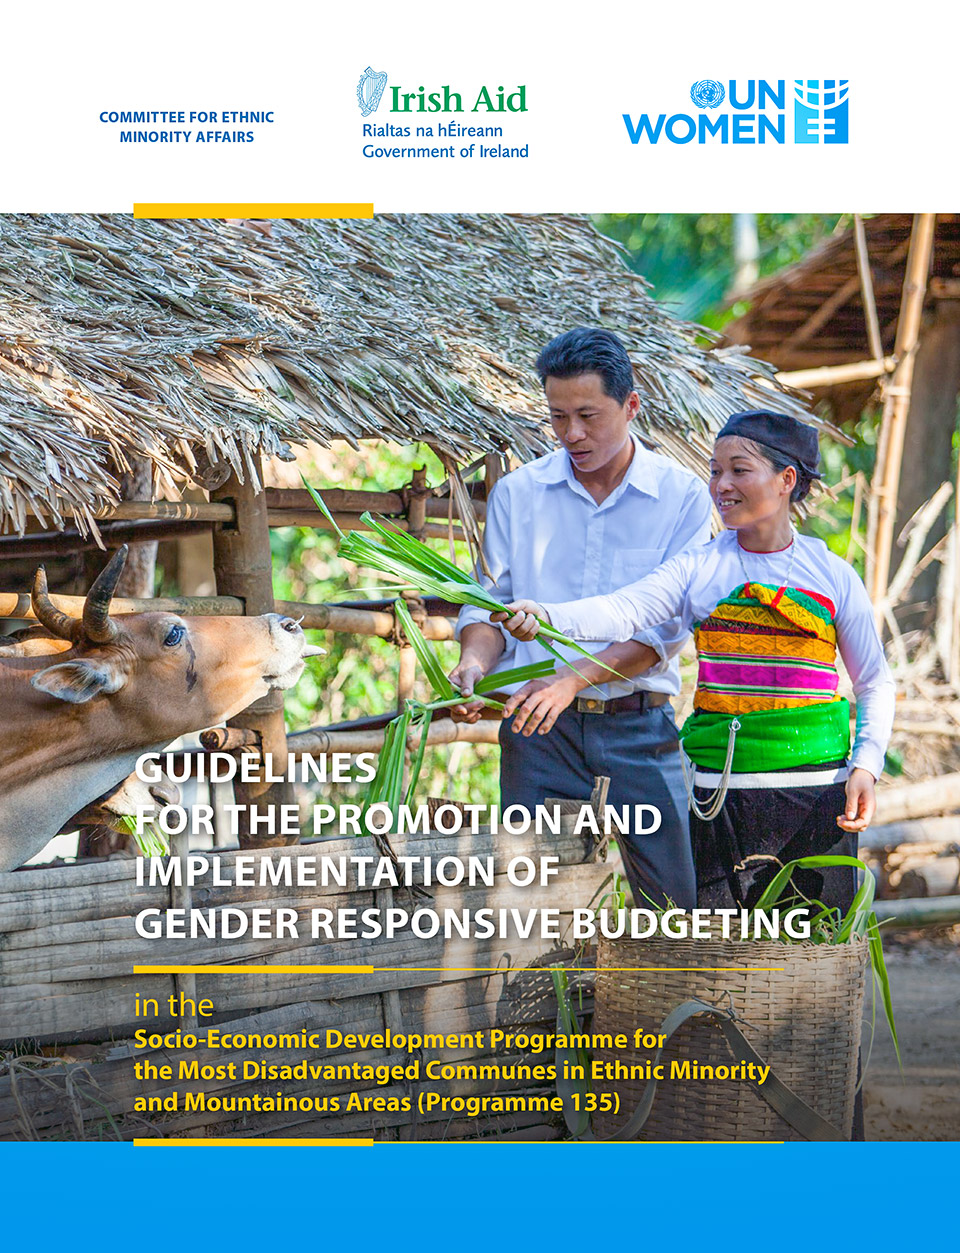 Guidelines for the Promotion and Implementation of Gender Responsive Budgeting in the Socio-Economic Development Programme for the Most Disadvantaged Communes in Ethnic Minority and Mountainous Areas (Programme 135)